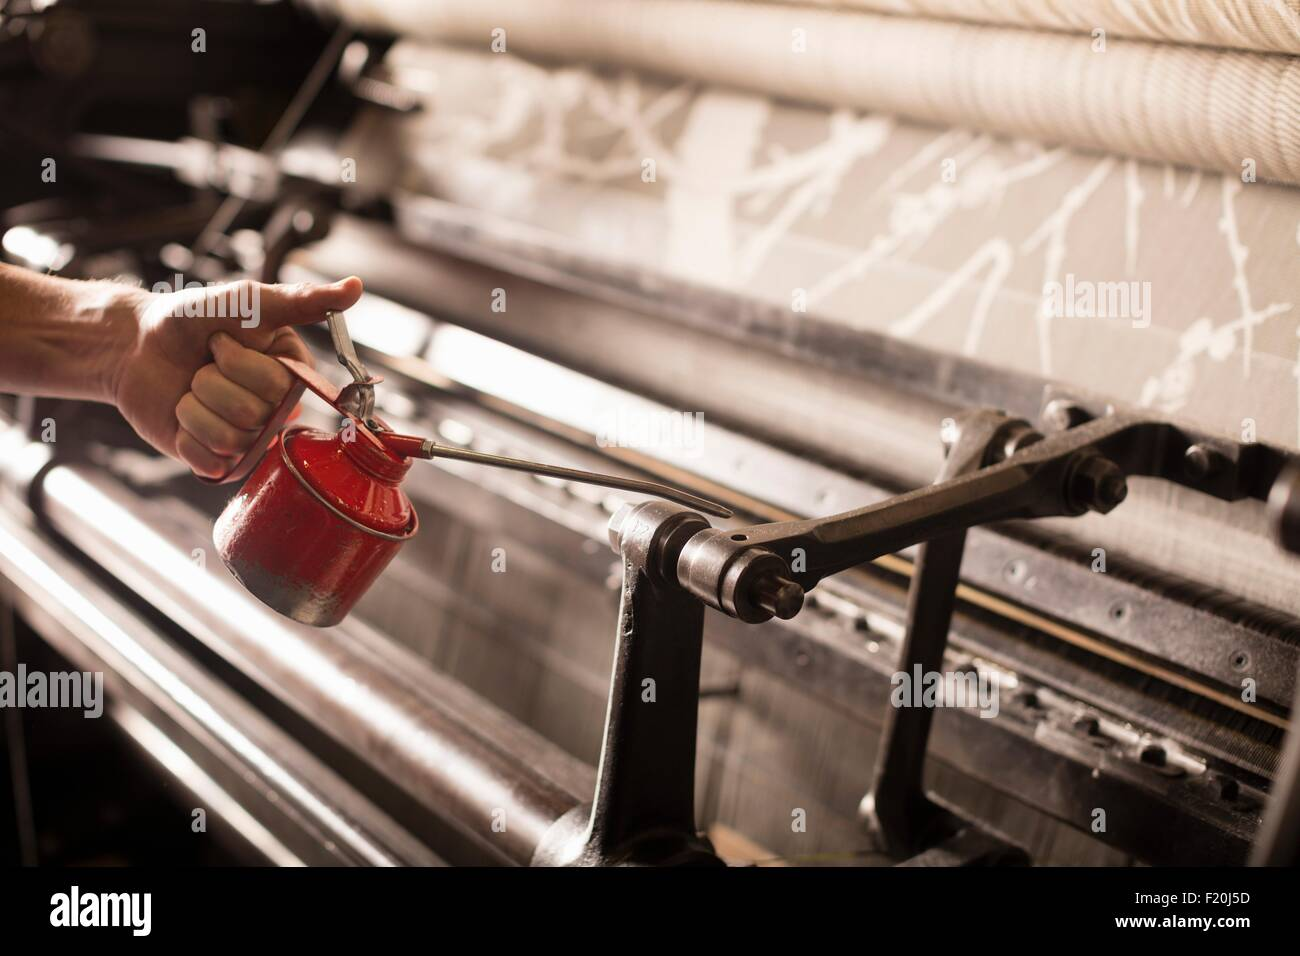 Hand of male weaver oiling old weaving machine in textile mill Stock Photo